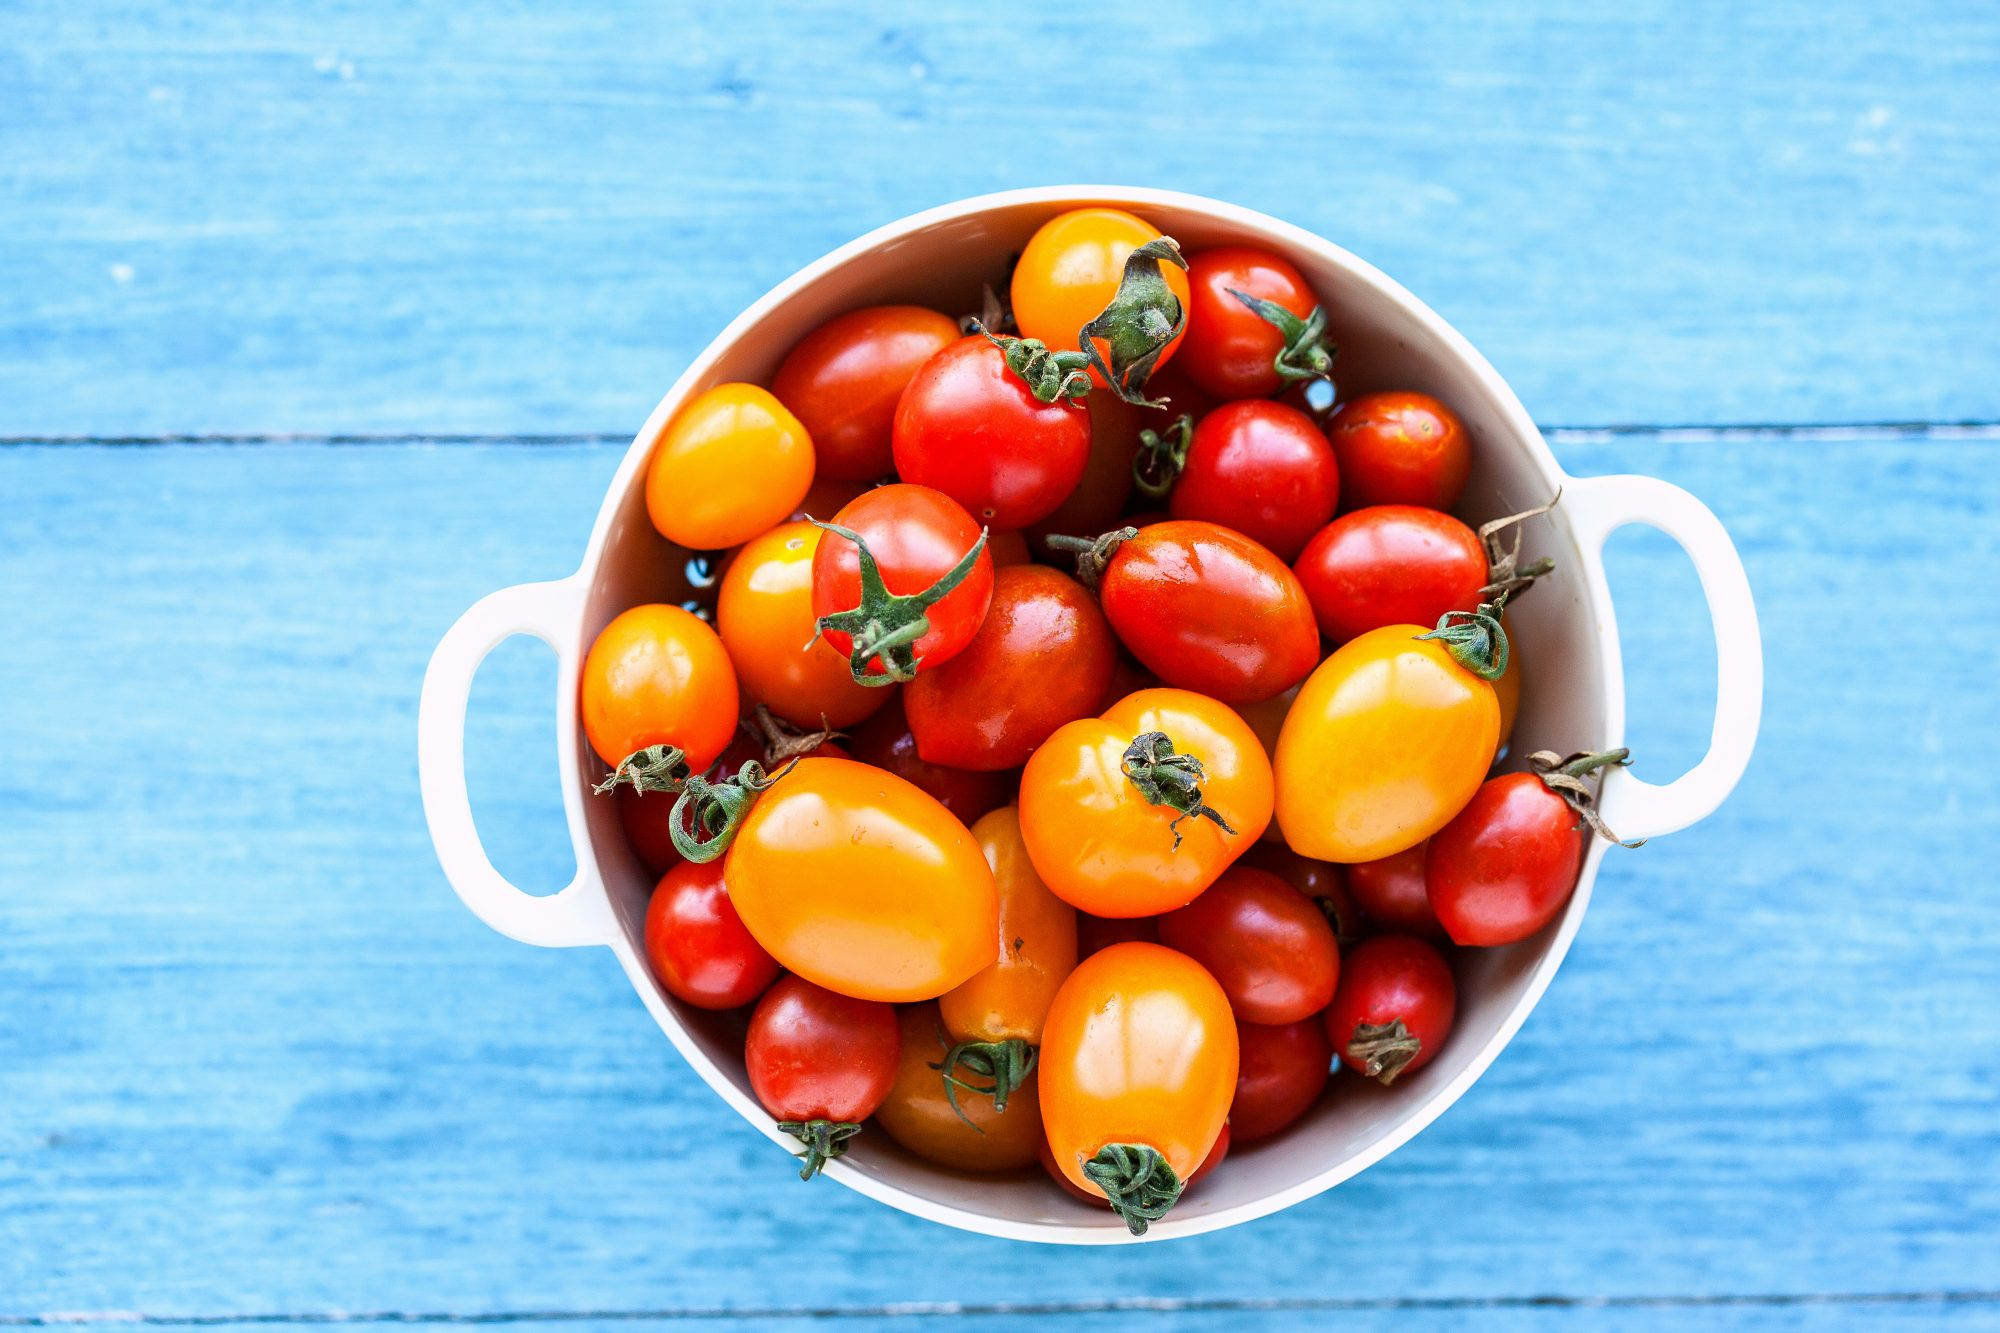 getty tomatoes image